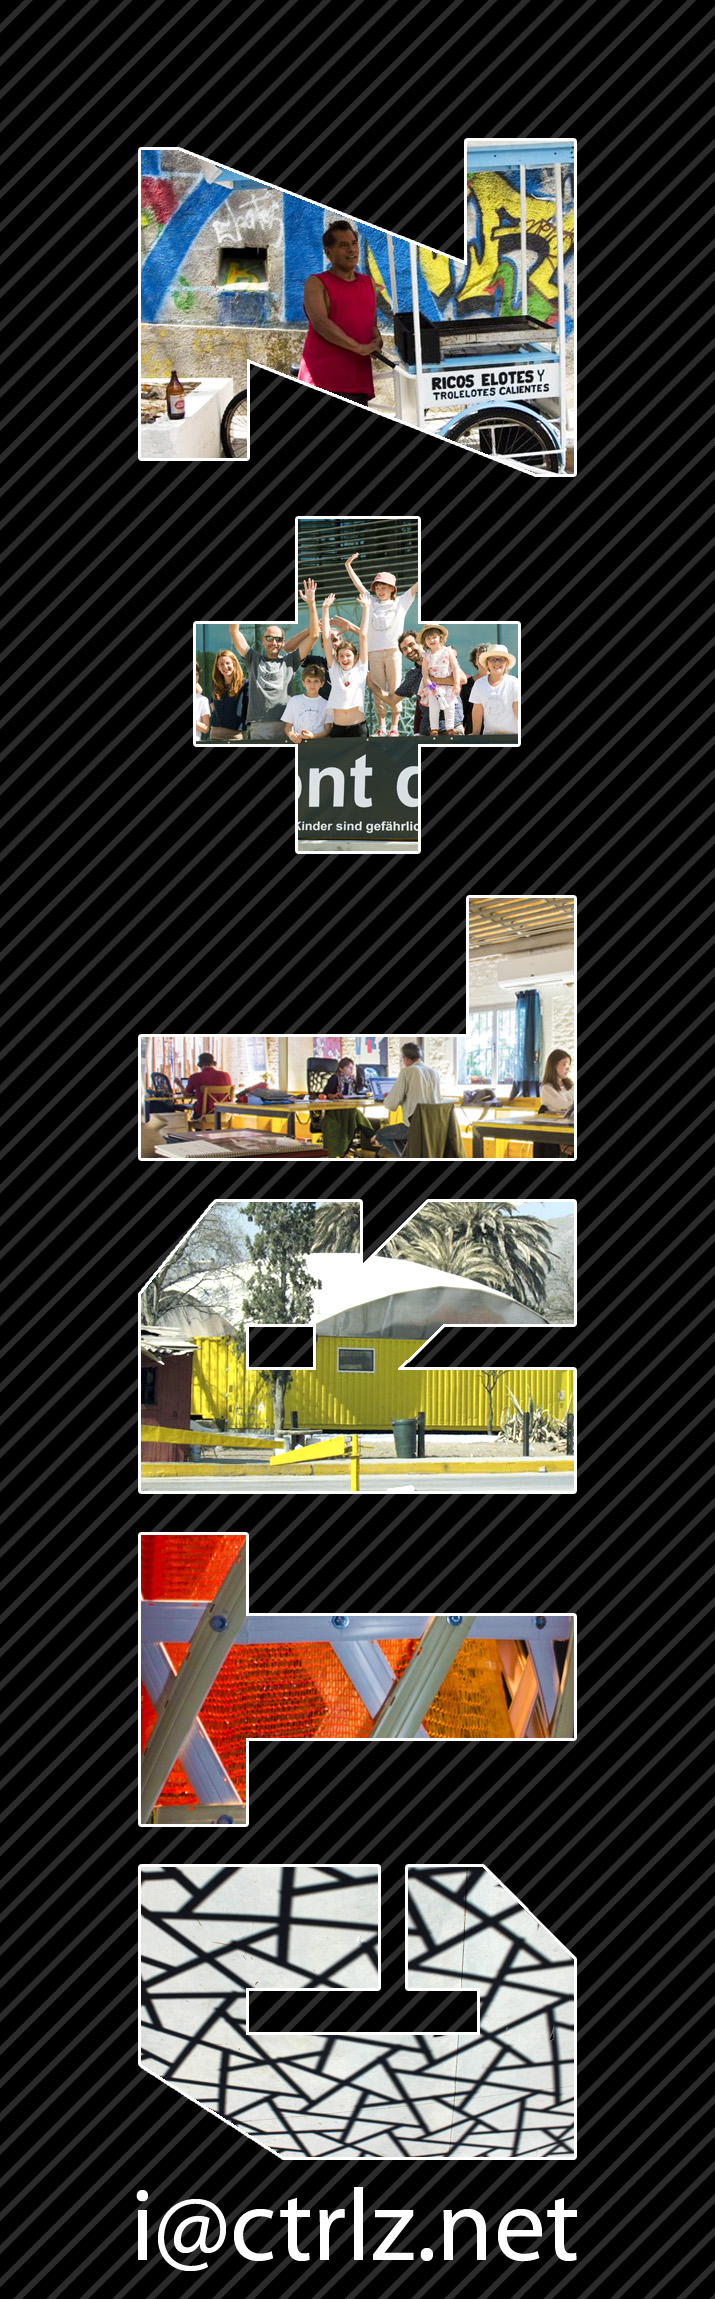 ctrl+z architettura arquitectura architecture upcycling punk